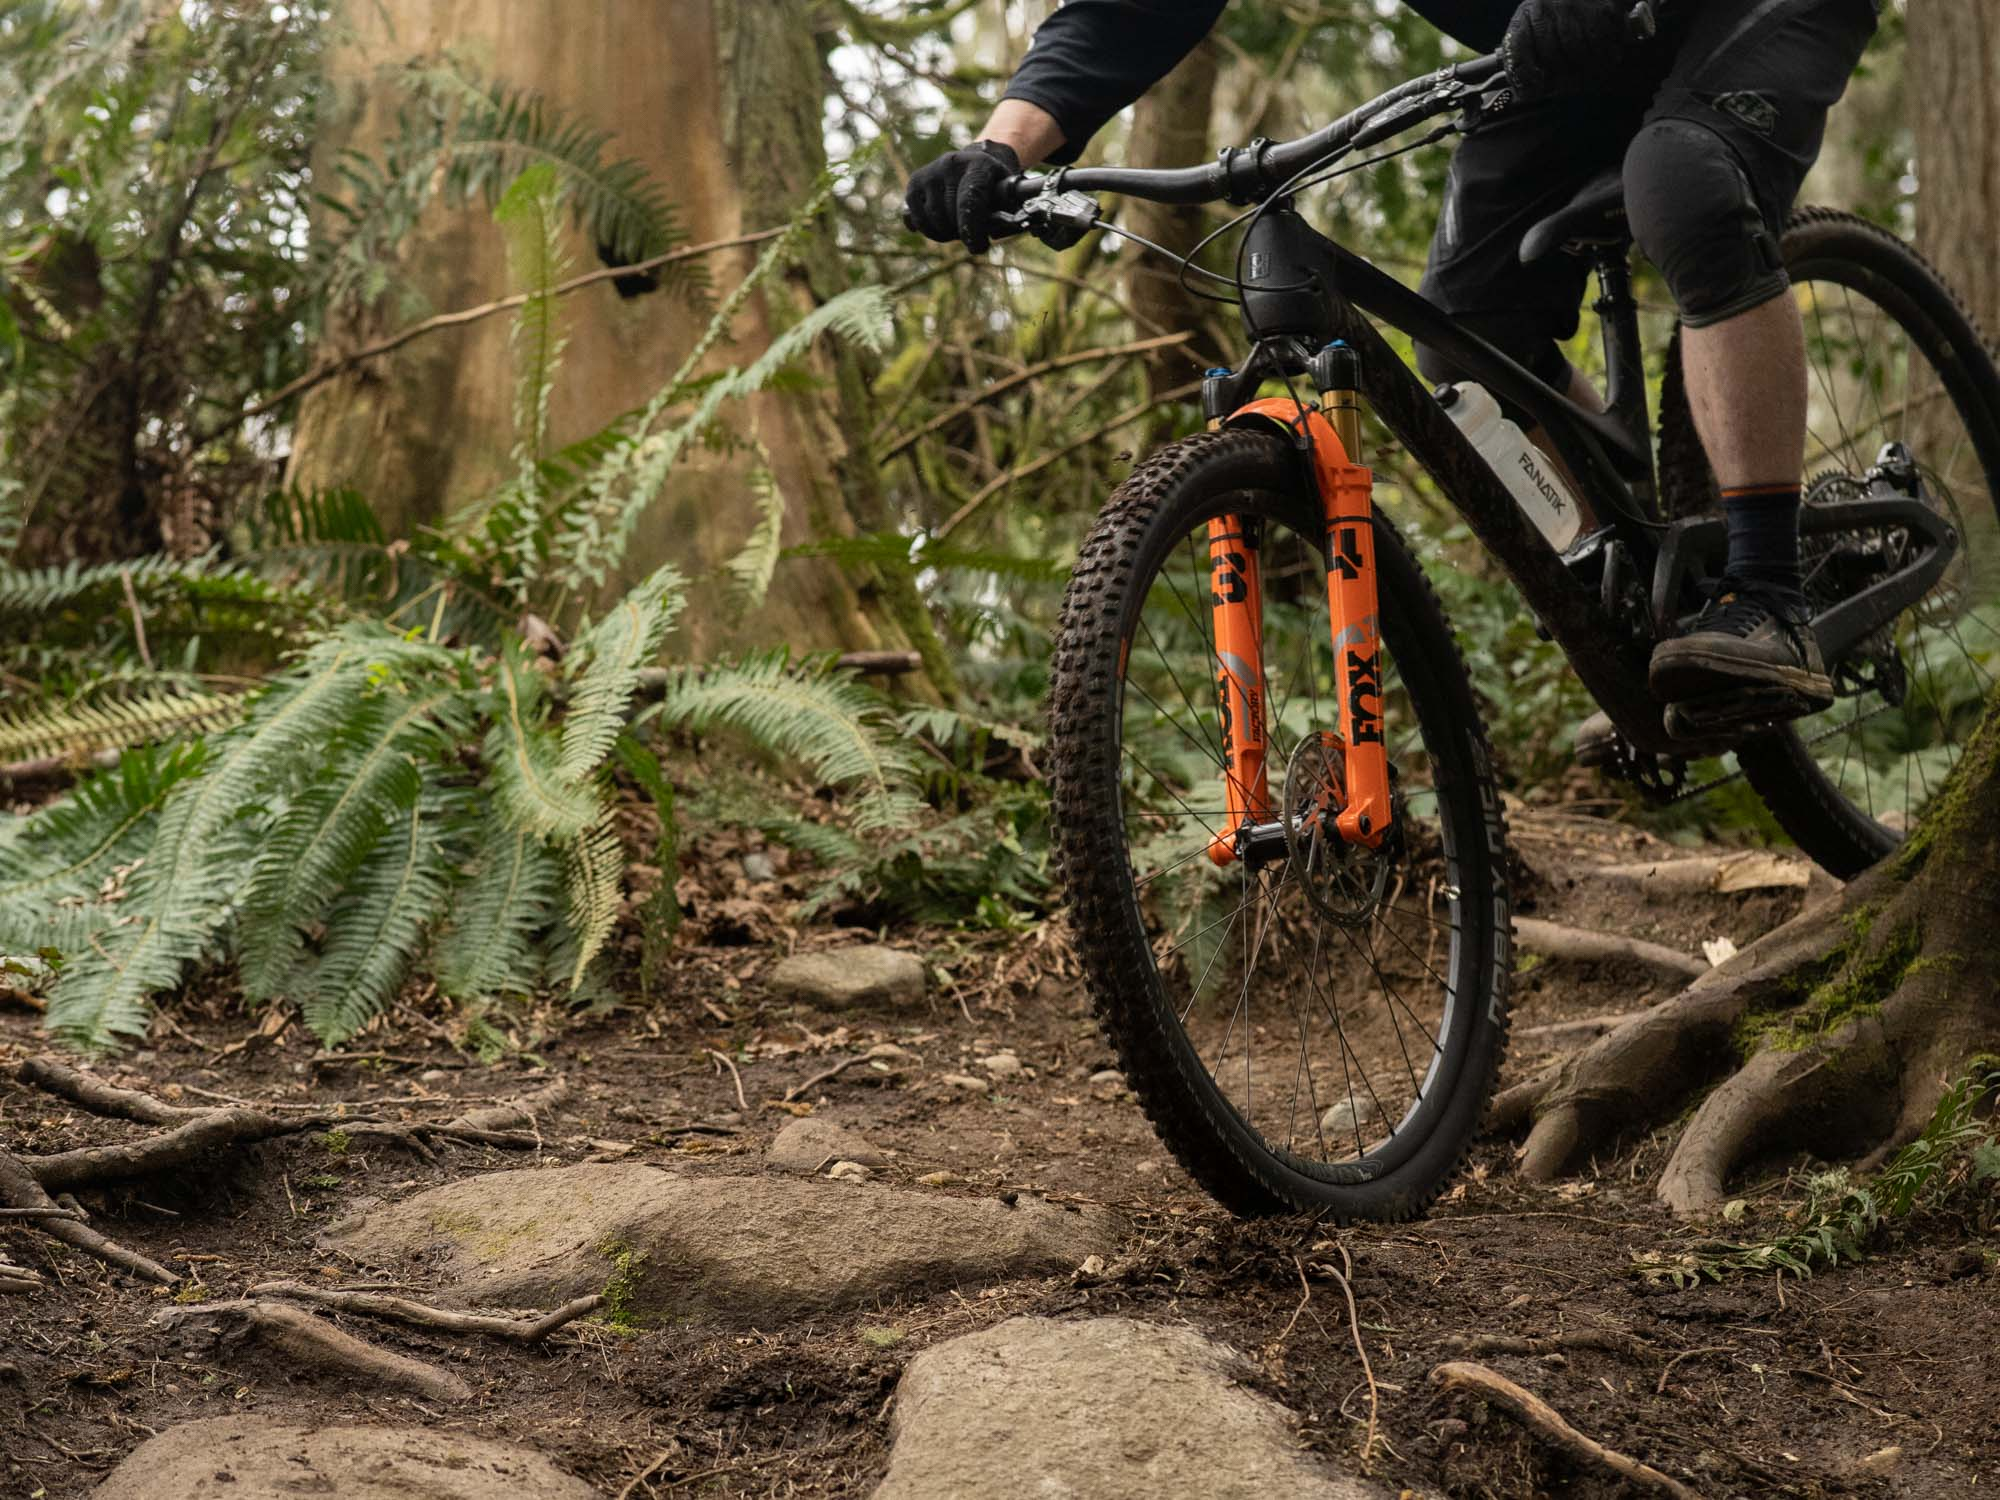 The 34 SC is plenty stiff enough for most riding conditions